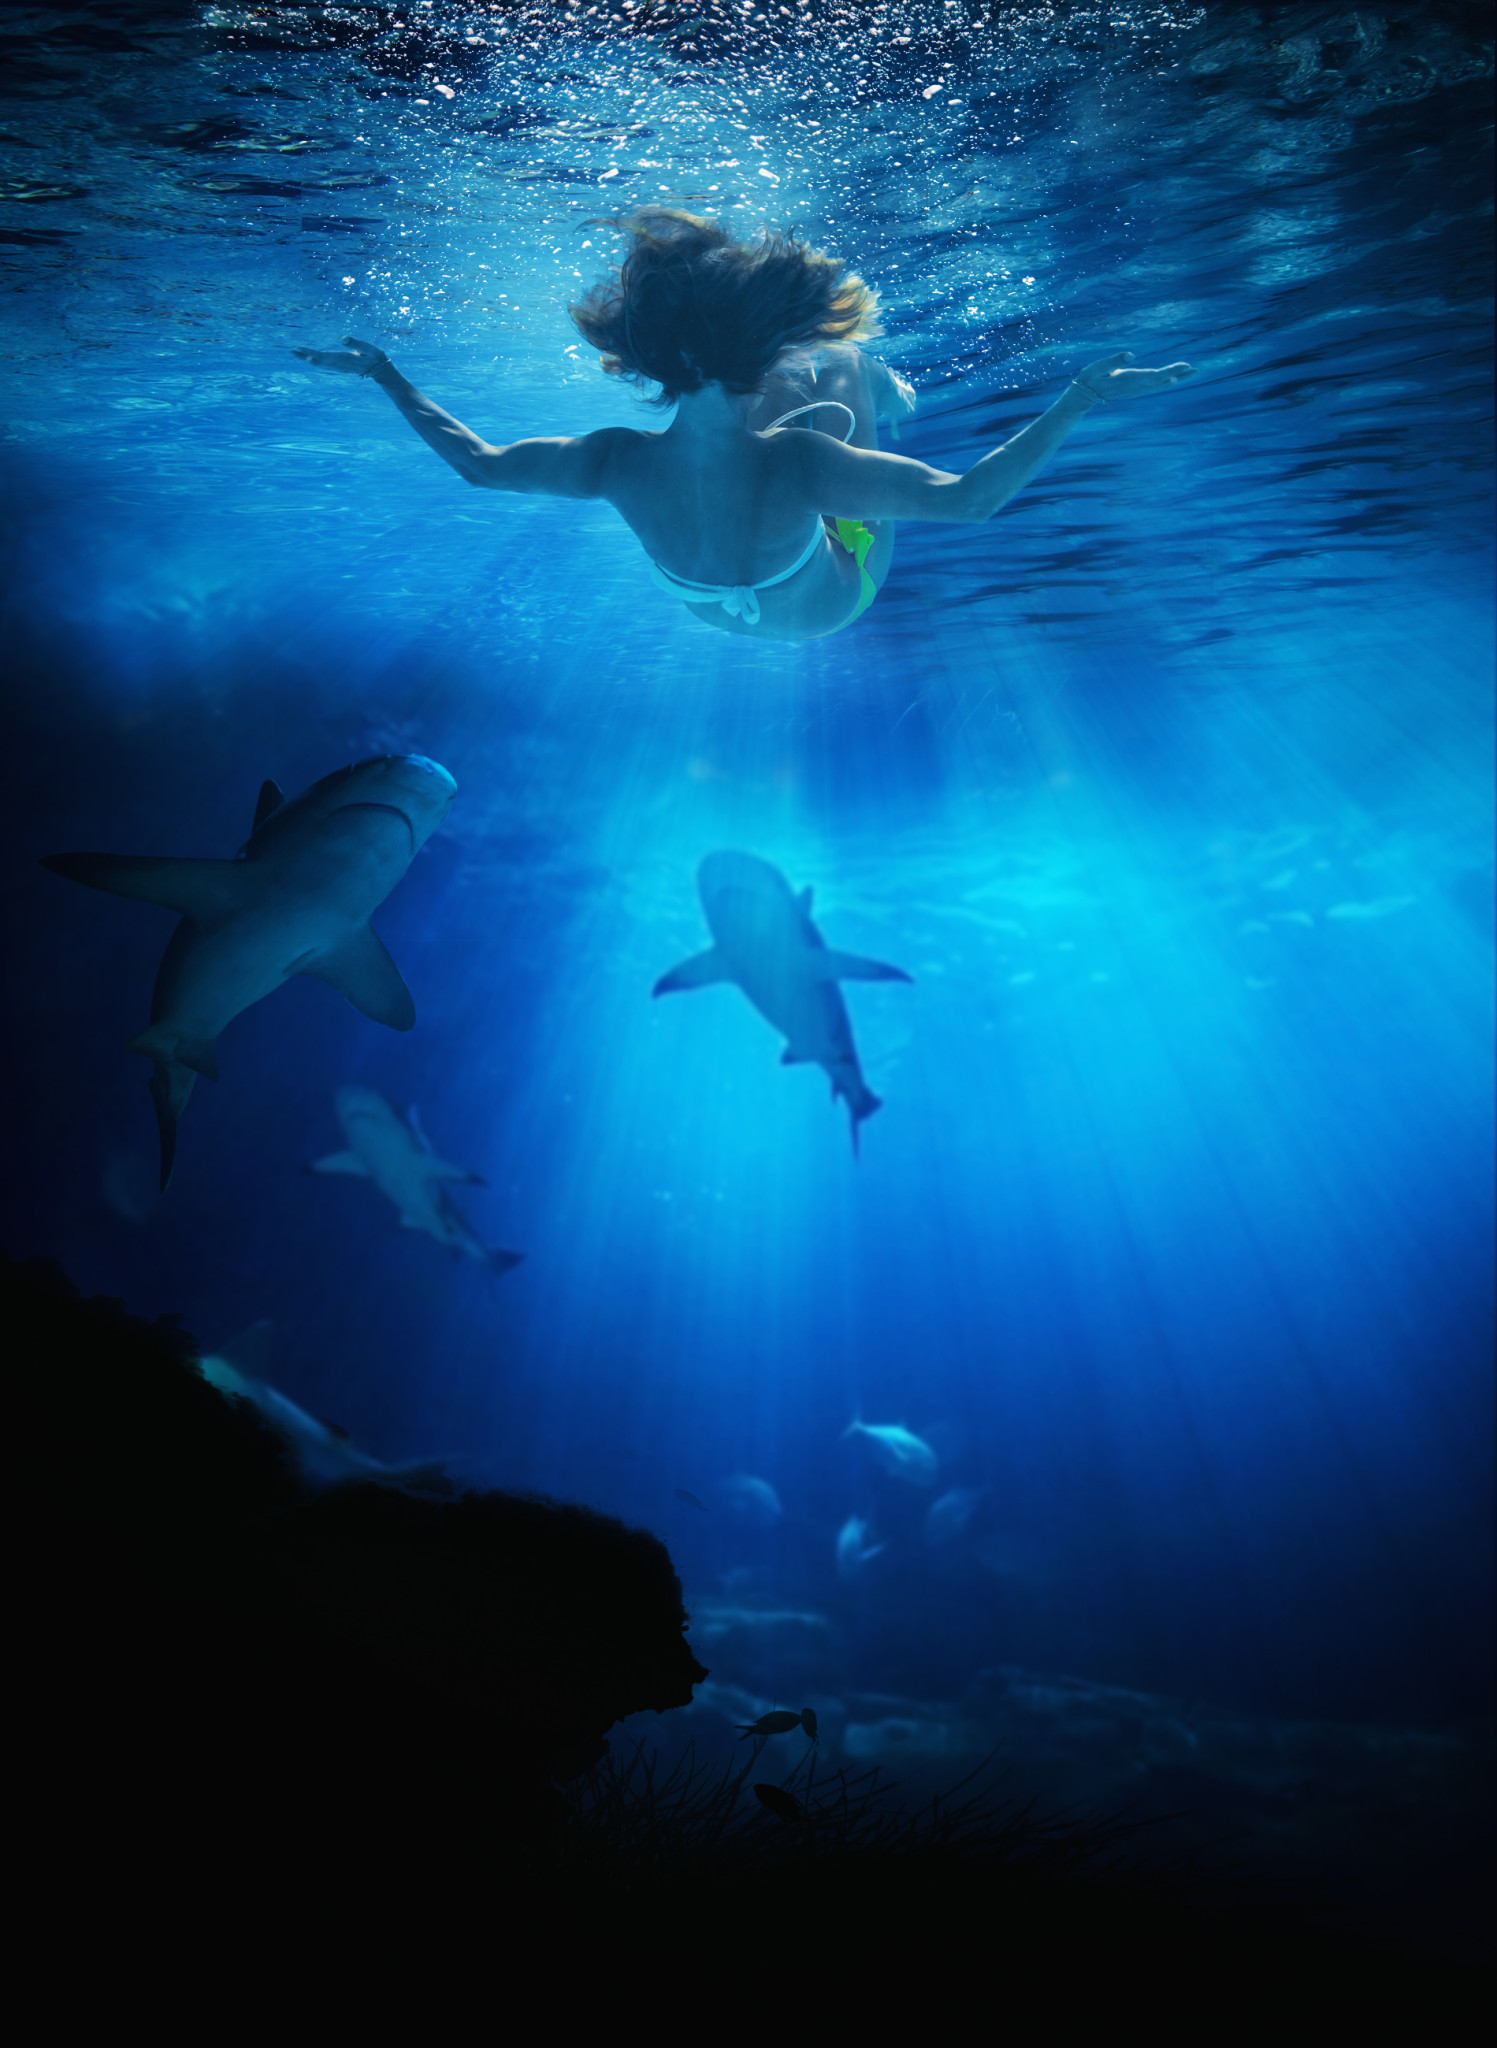 Young Woman Swimming With Skarks In The Ocean